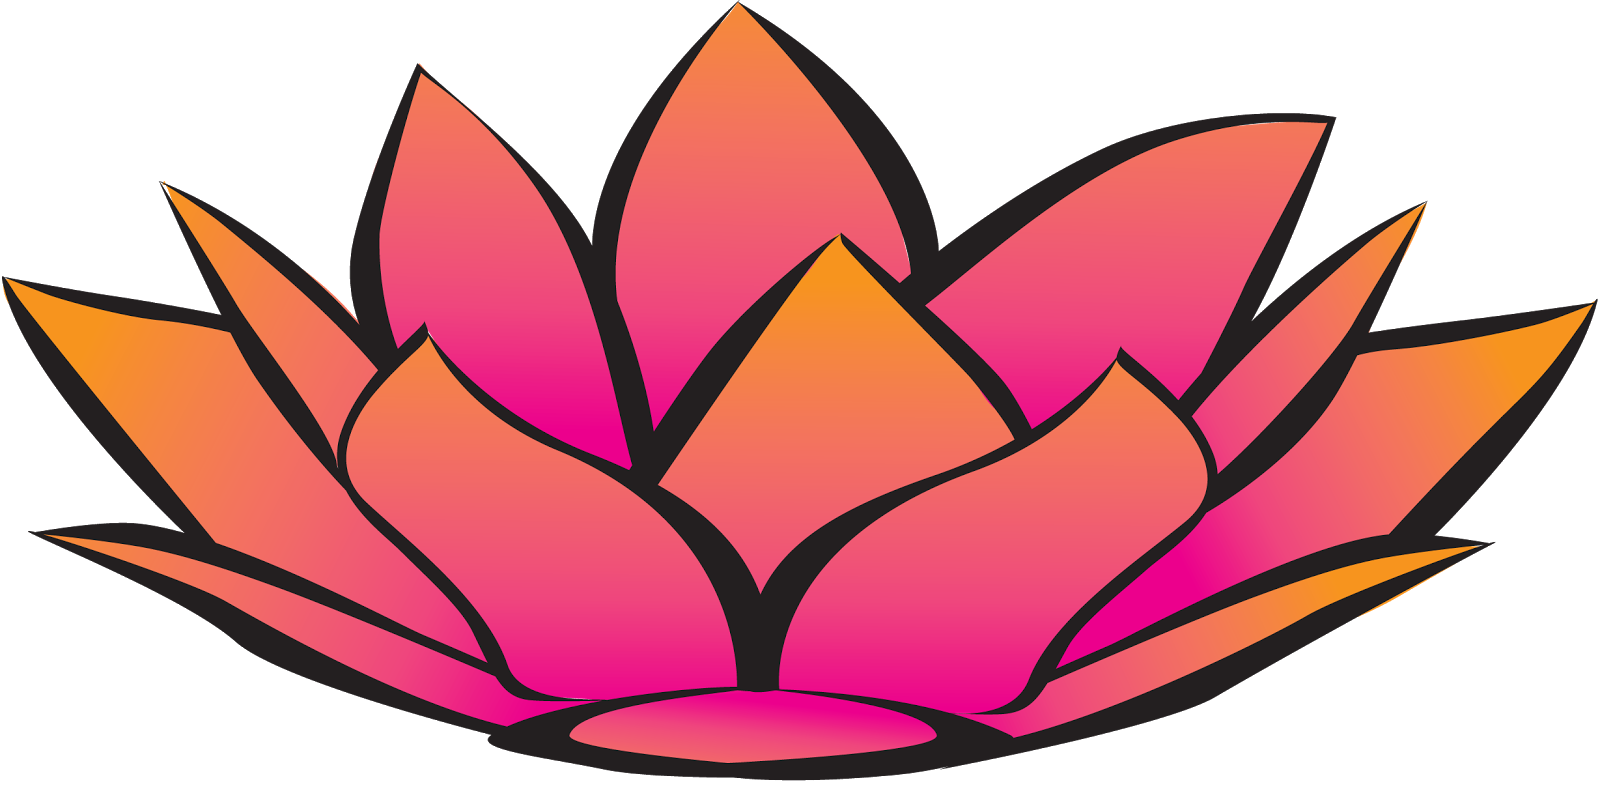 Flopsock Designs Lotus Flower